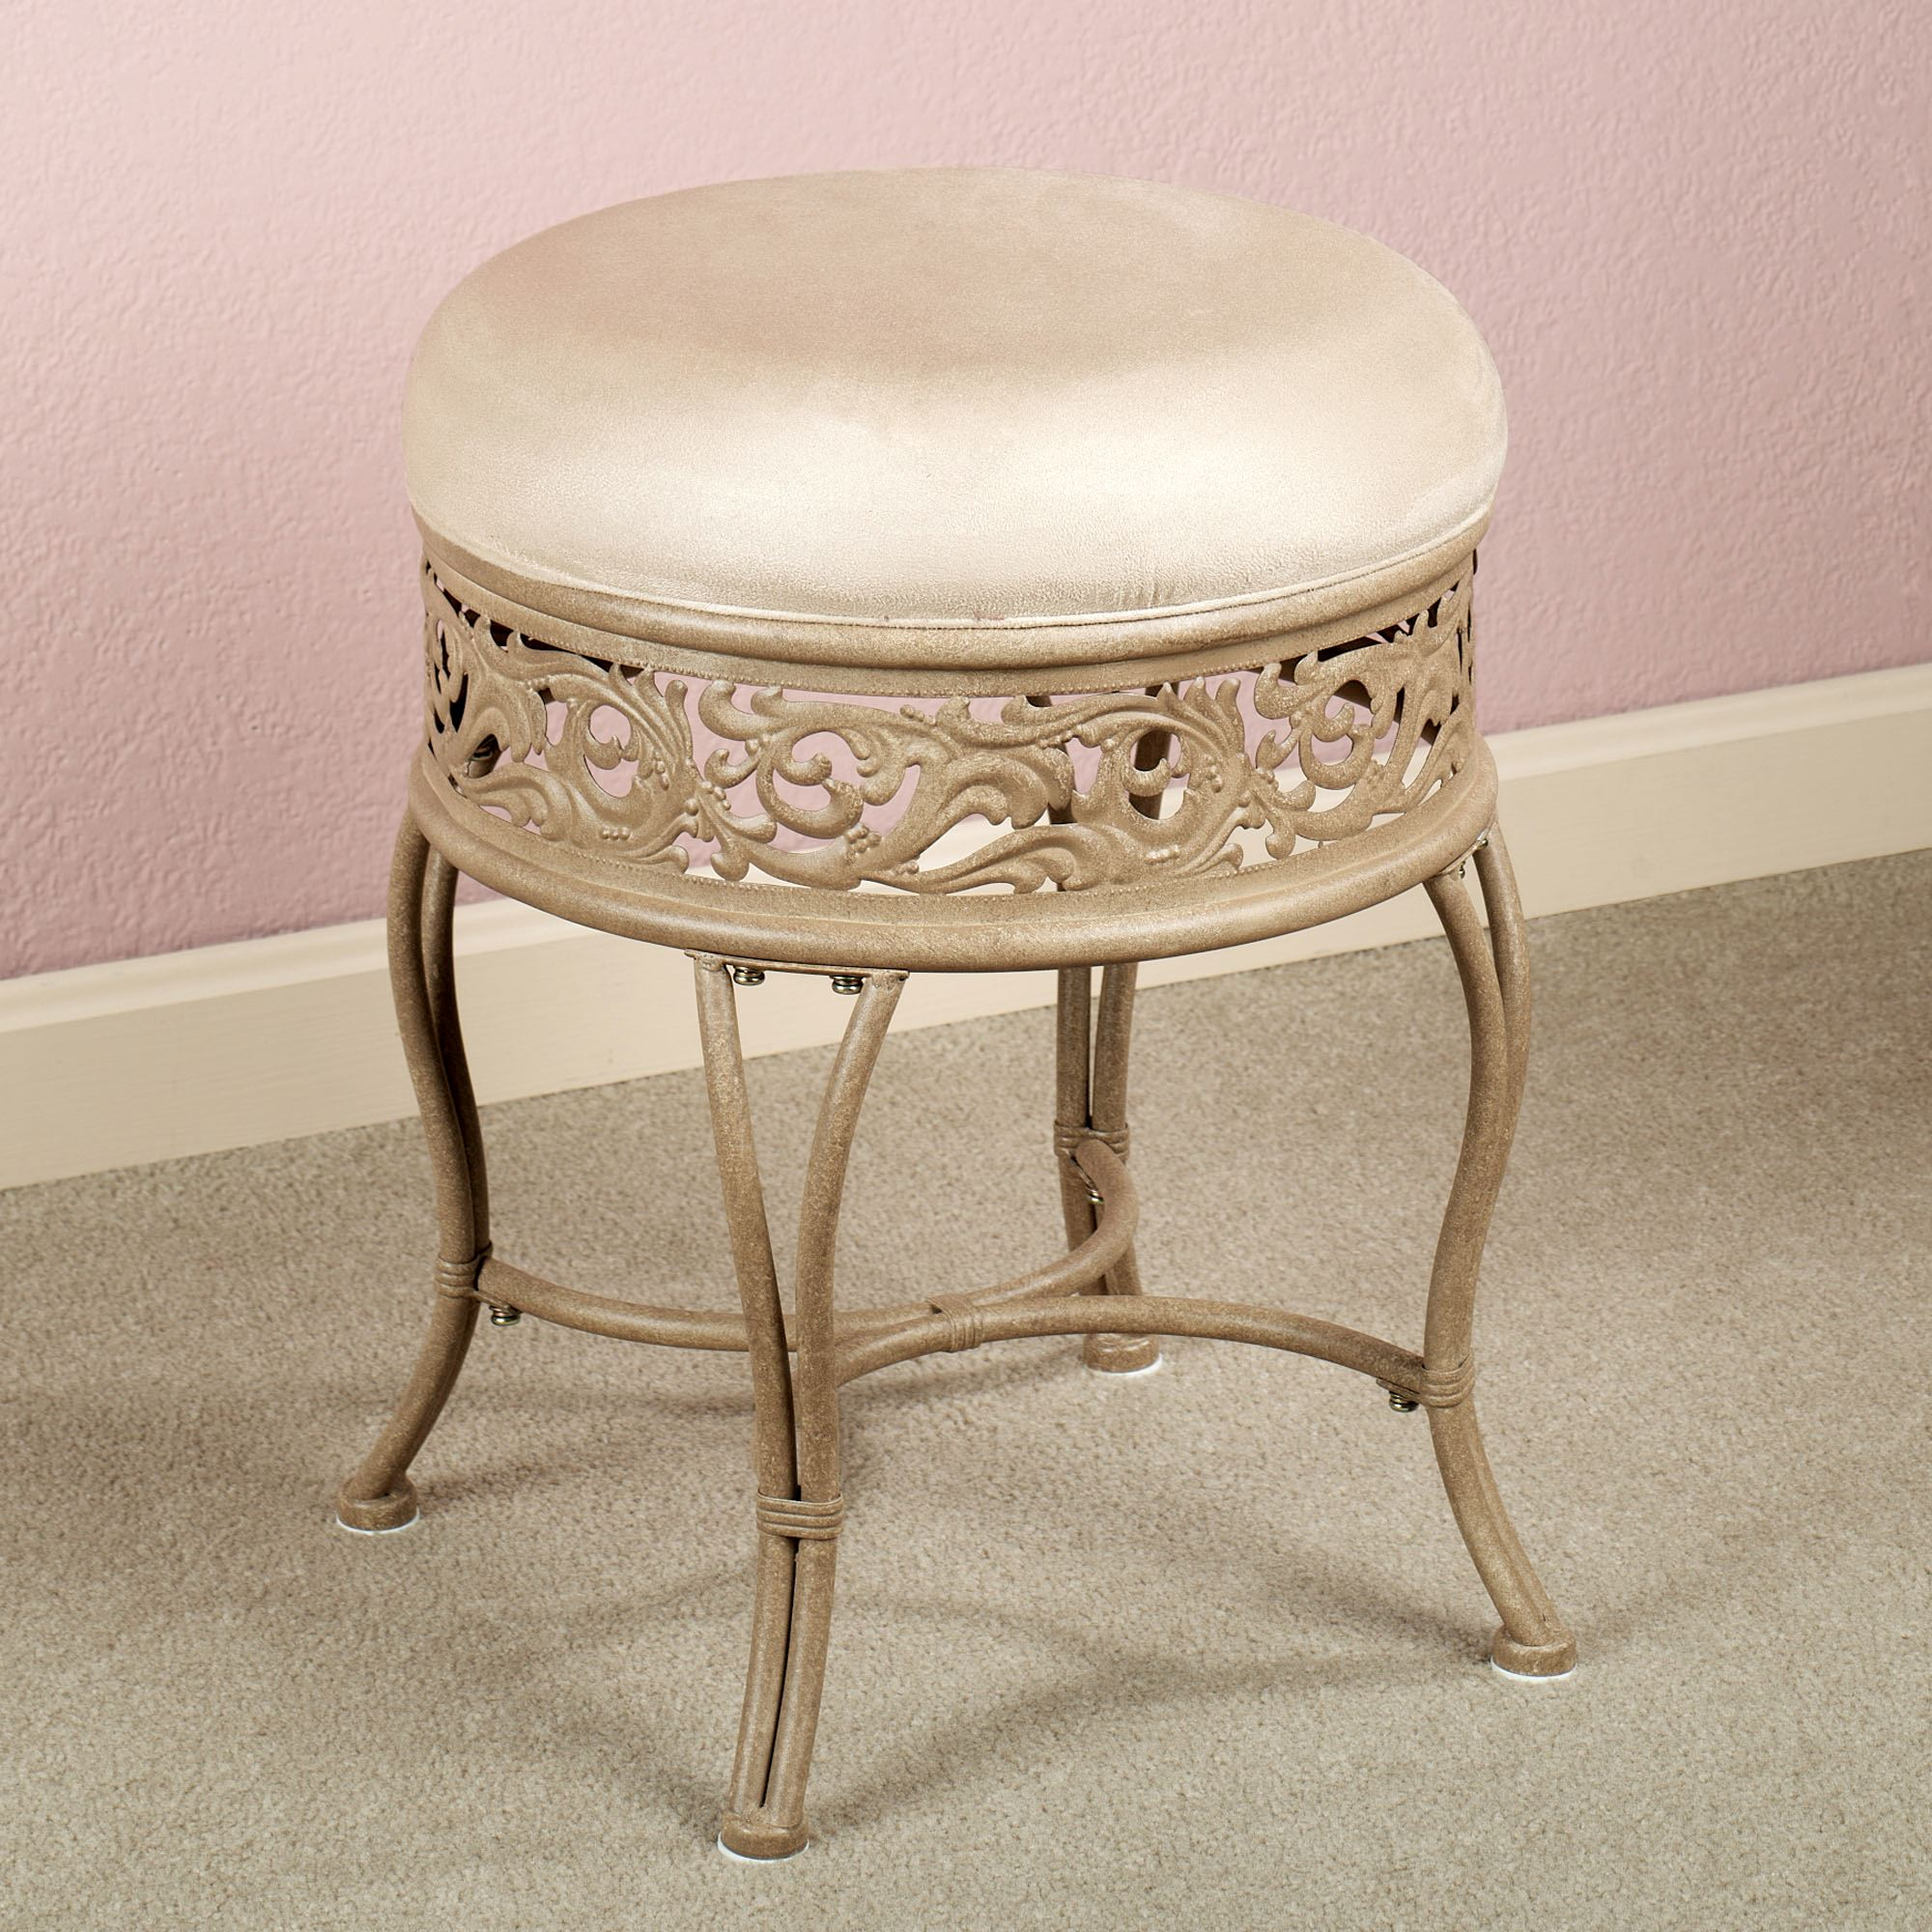 Breathtaking vanity stools for home furniture with vanity stool ikea